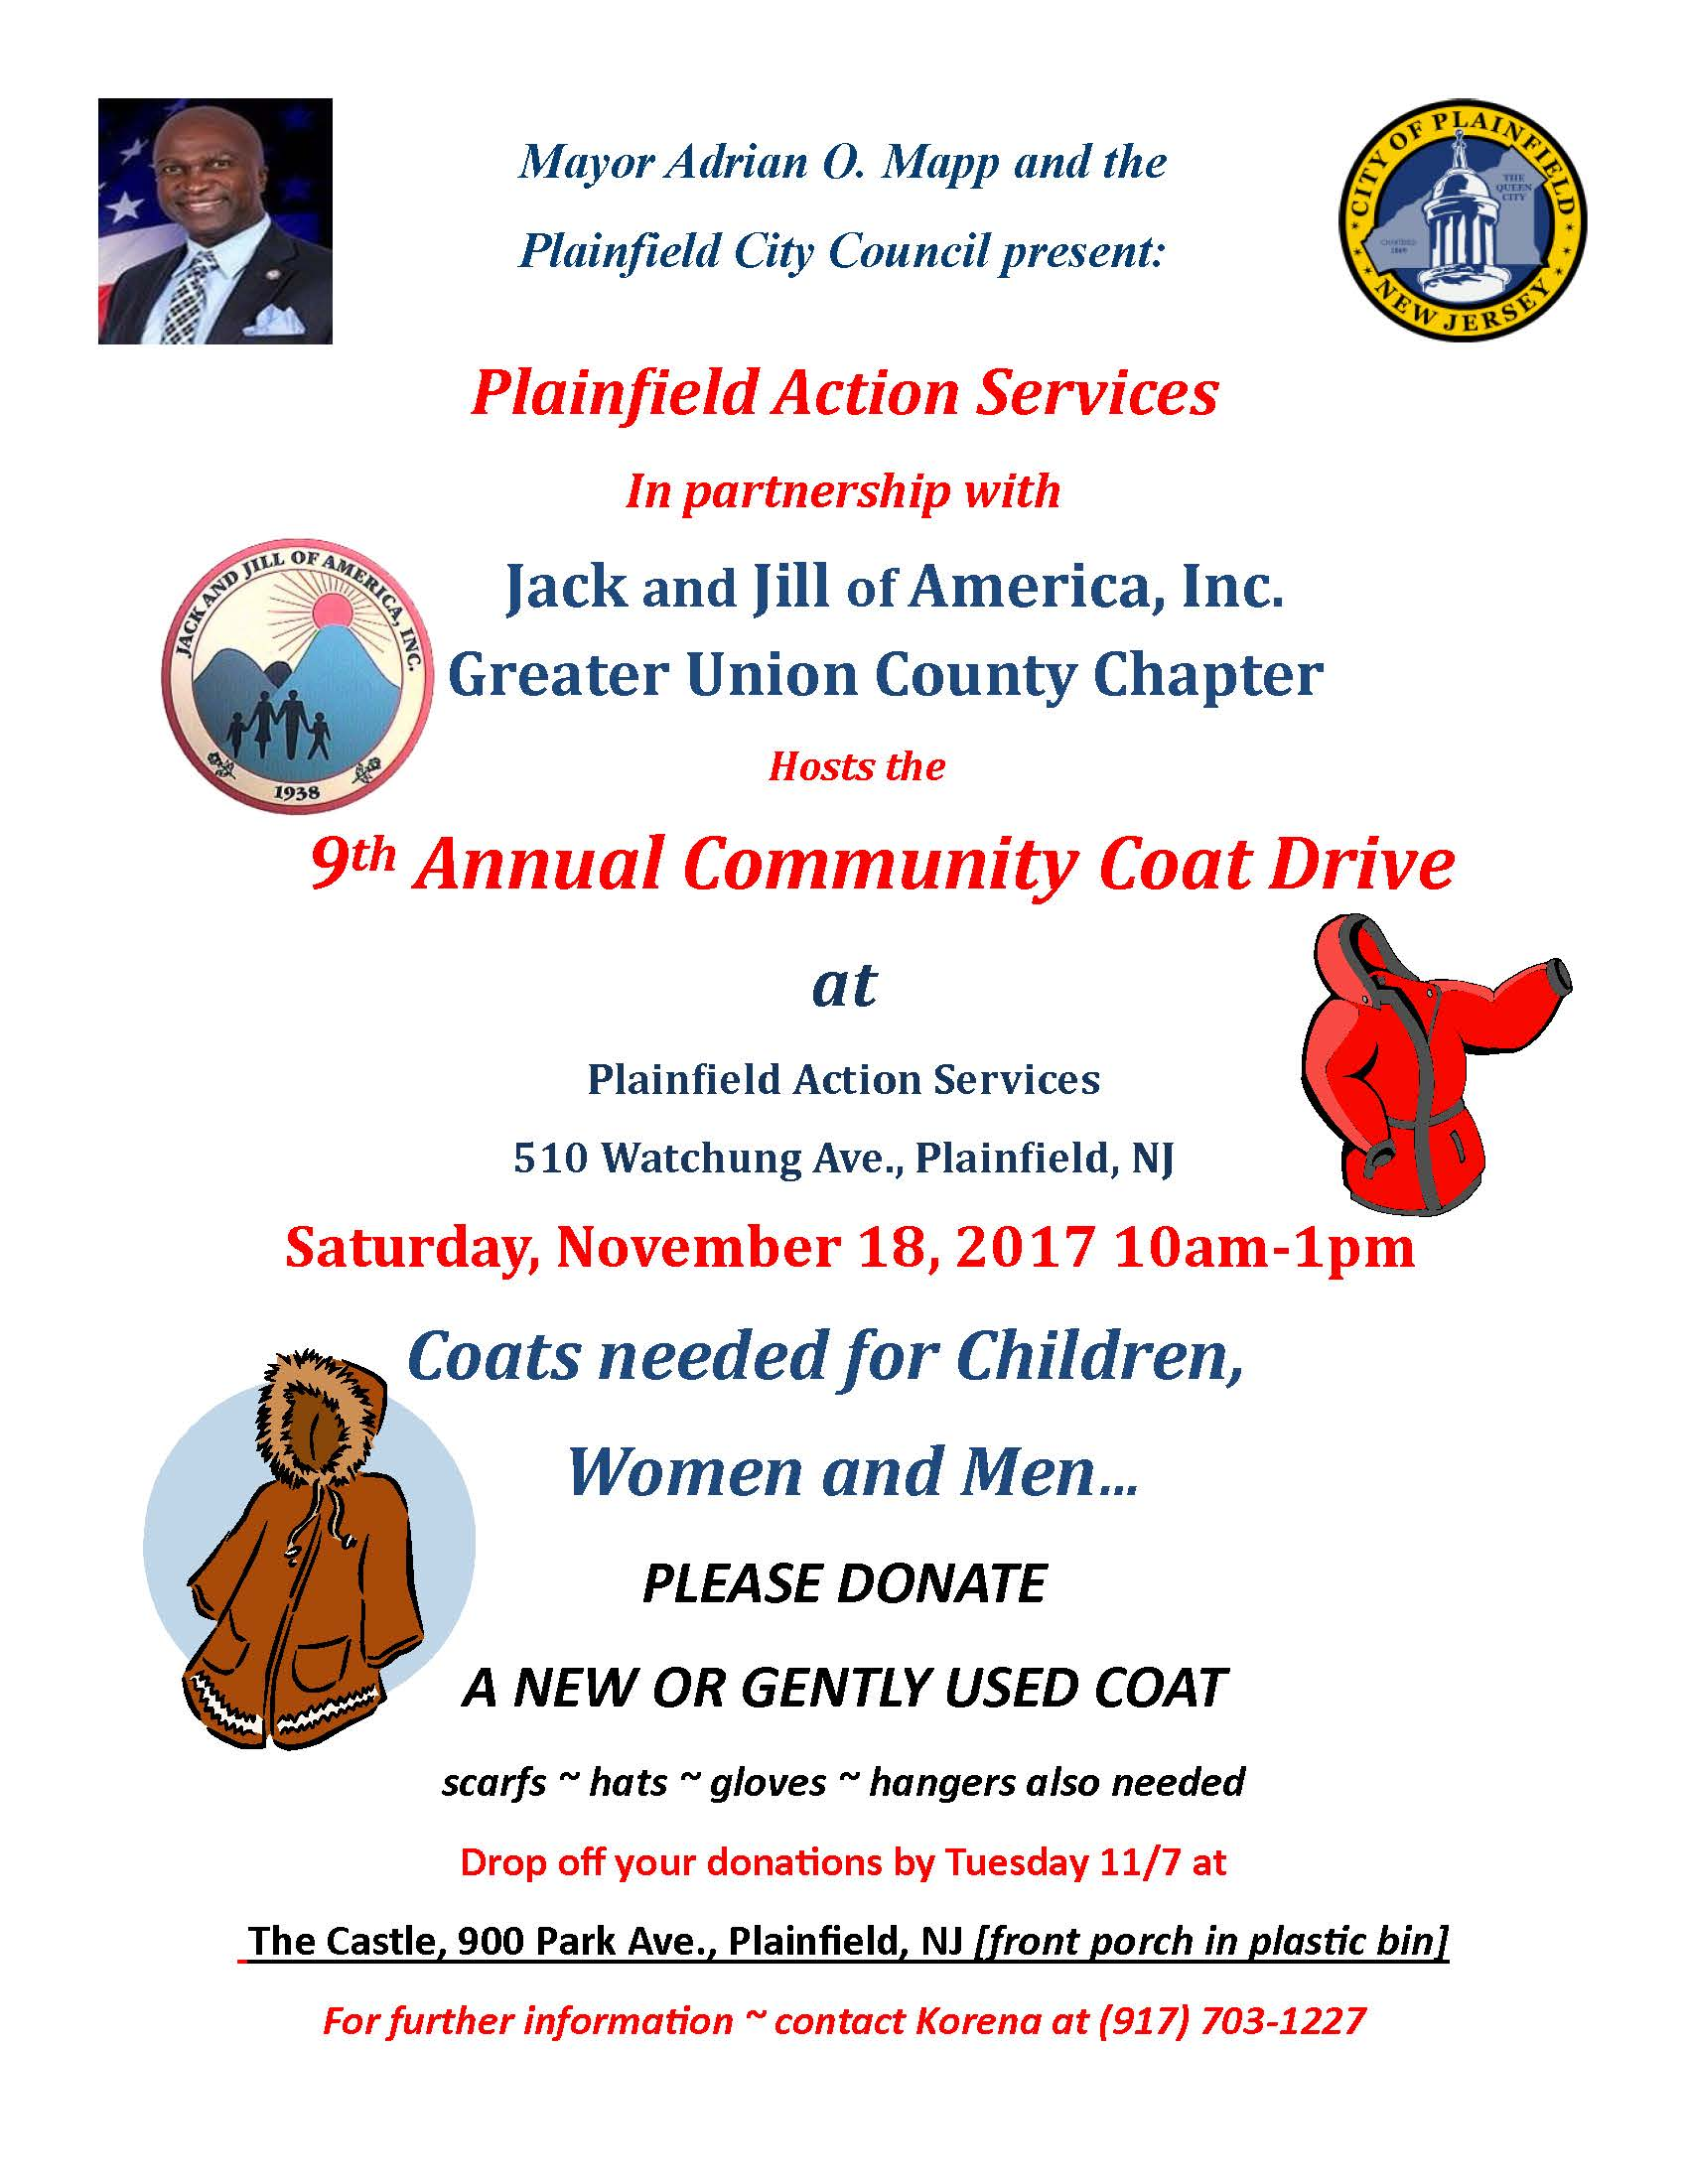 PAS 2017 Coat Drive Flyer.jpg